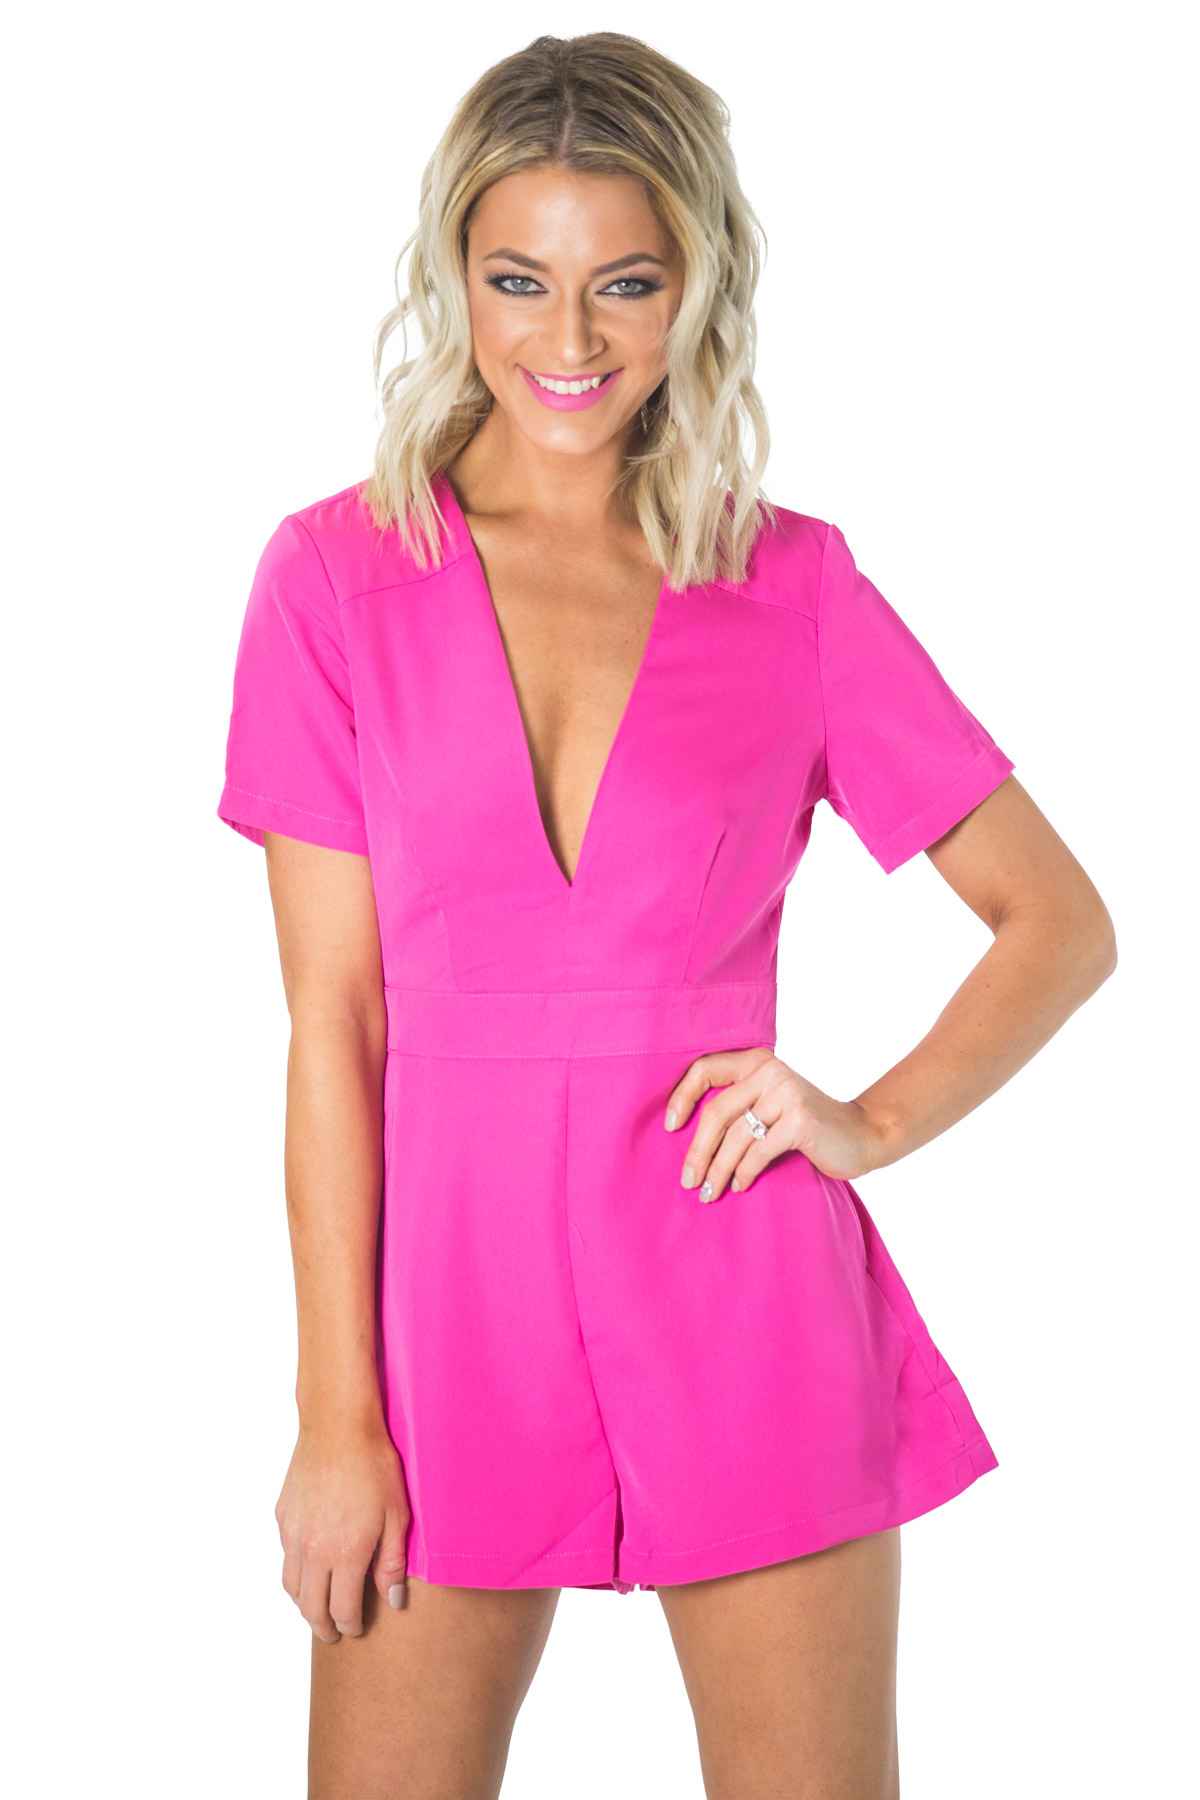 Summer Fling- Fuschia Romper, RaeLynn's Boutique